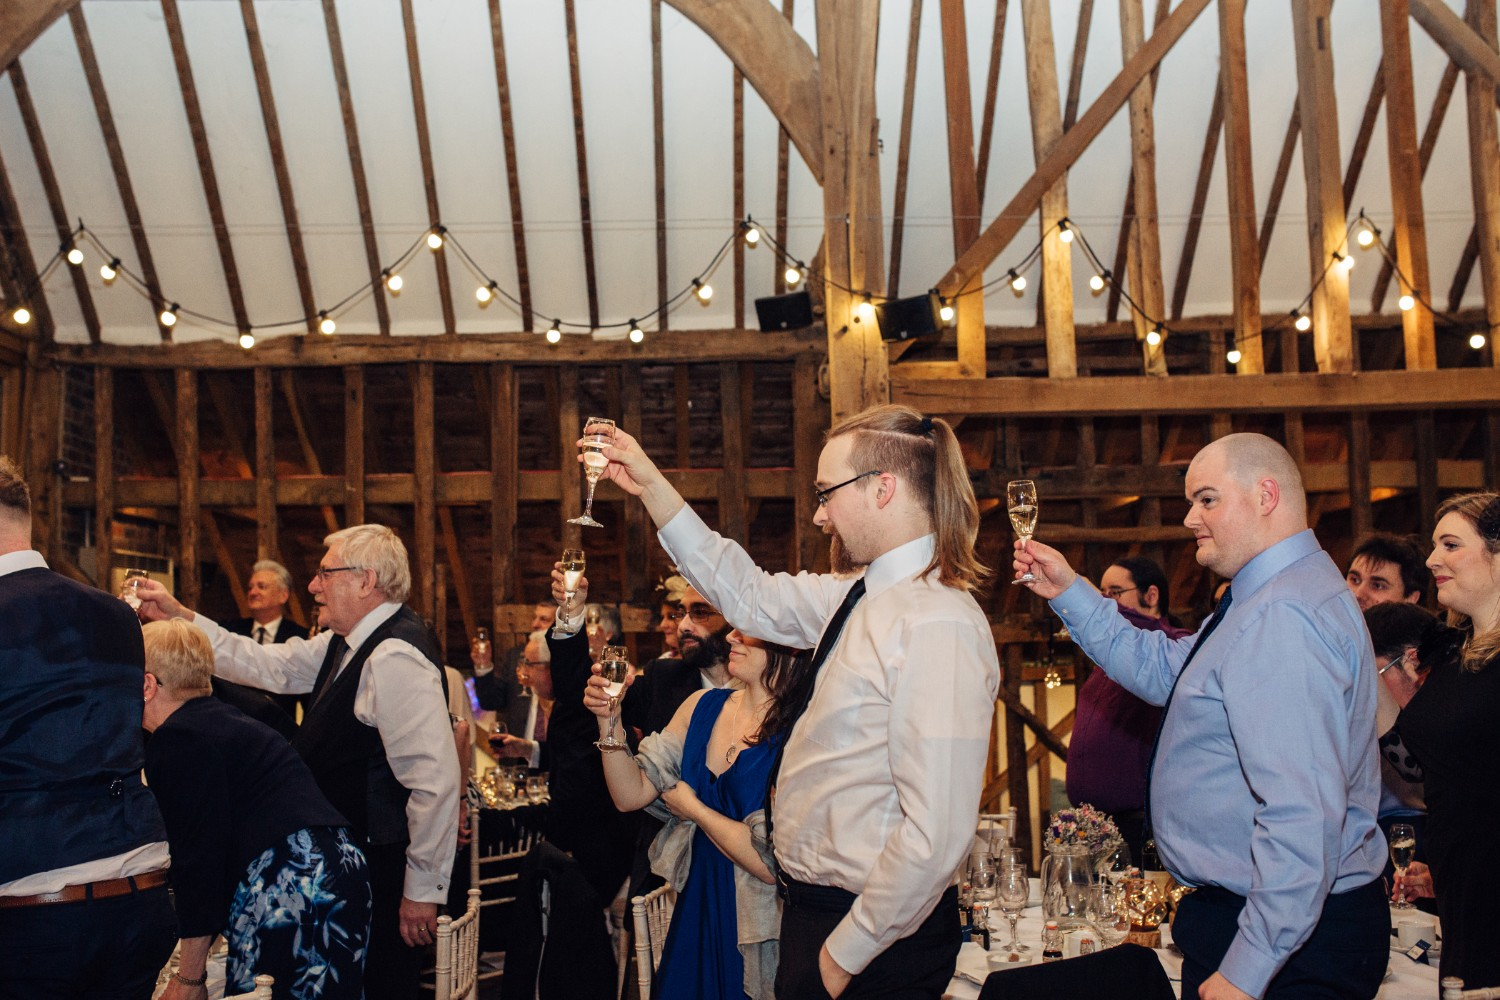 Liz + Dave Tewin Bury Farm Winter Wedding Naomijanephotography507.jpg